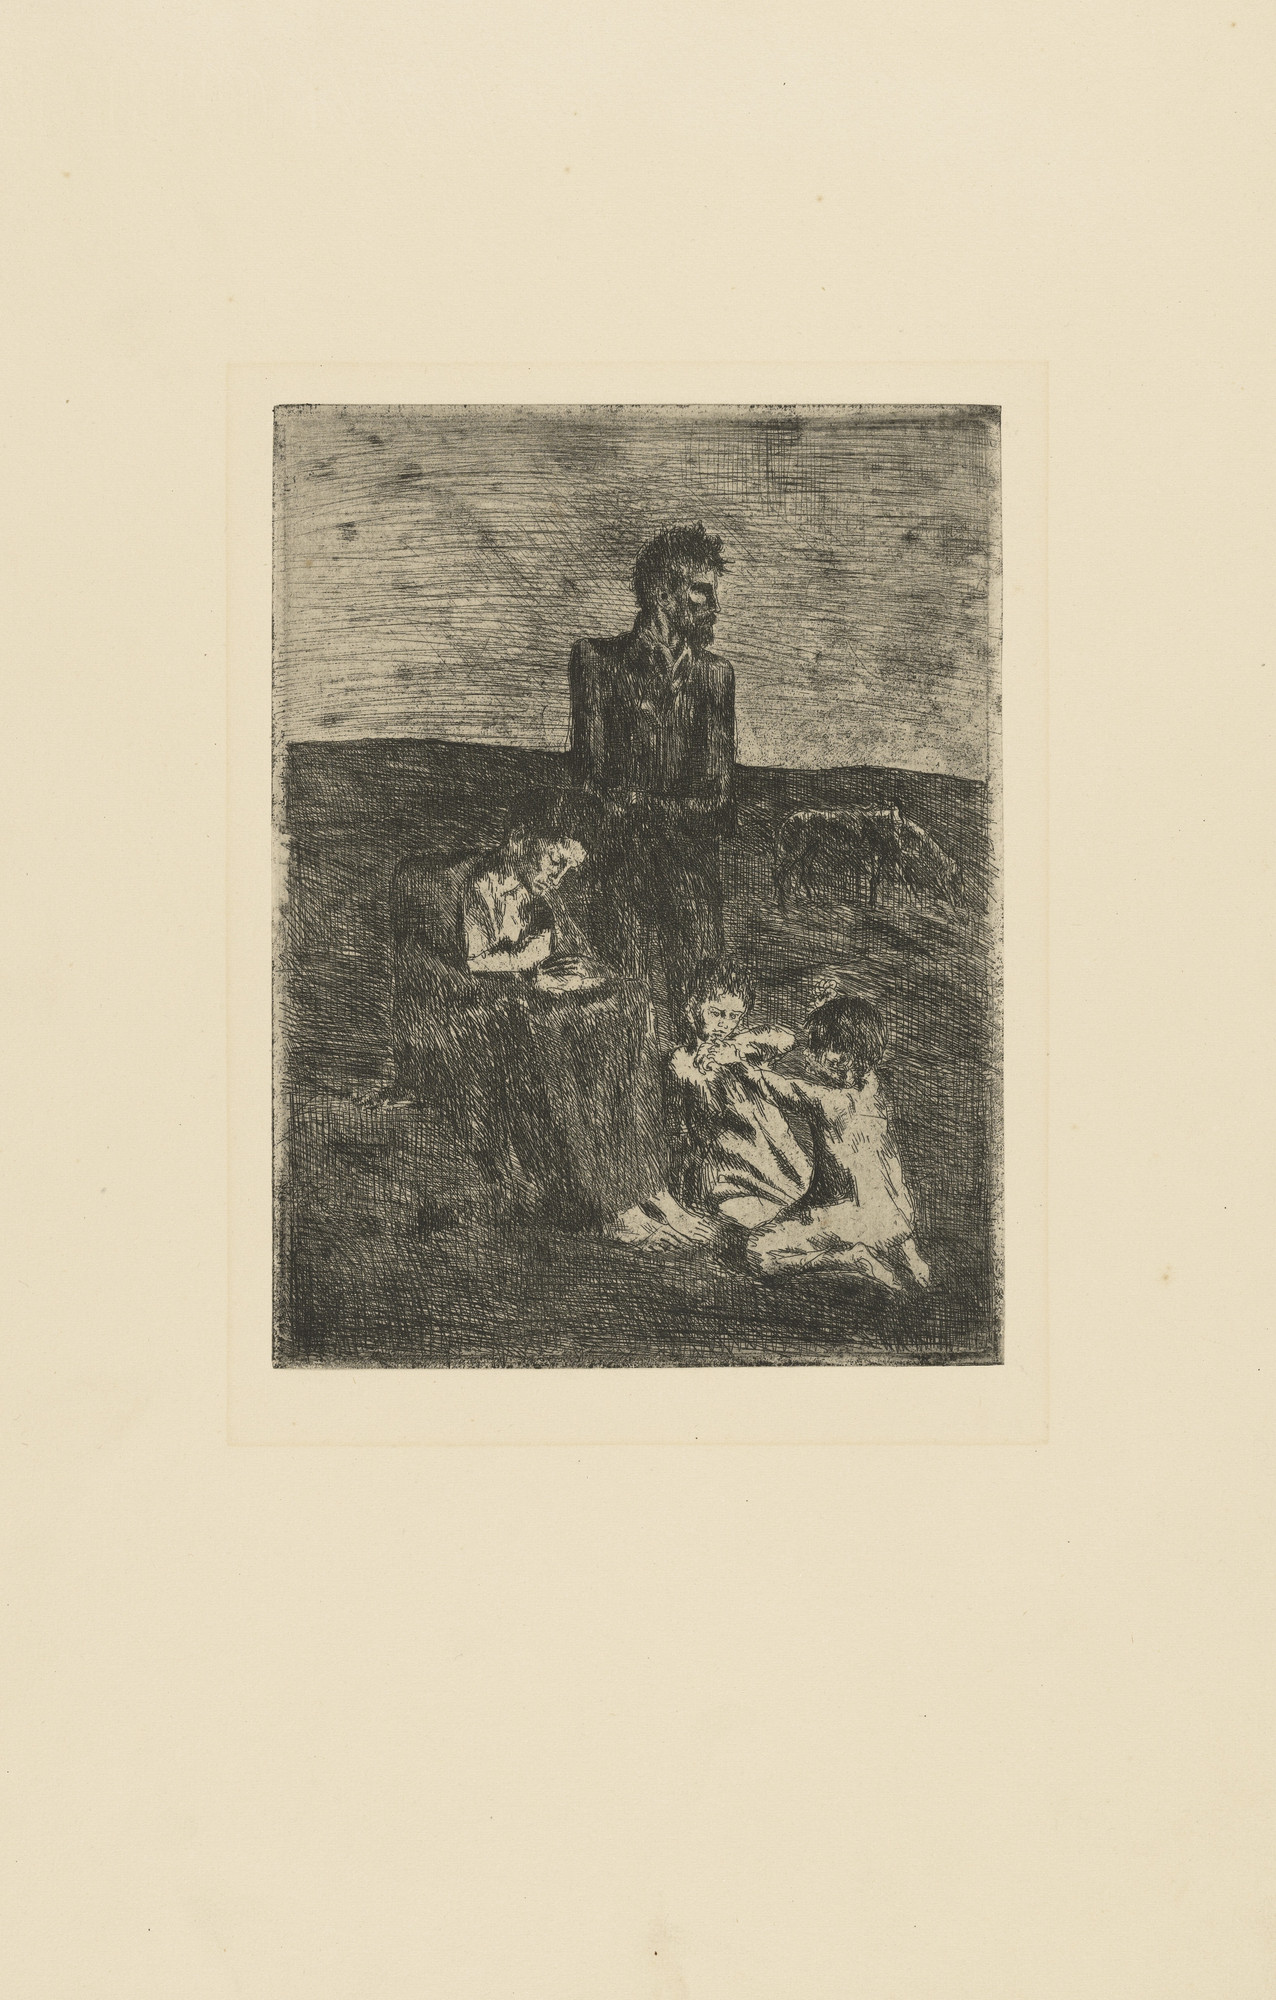 Pablo Picasso. The Poor (Les Pauvres) from the Saltimbanques series. 1905, published 1913